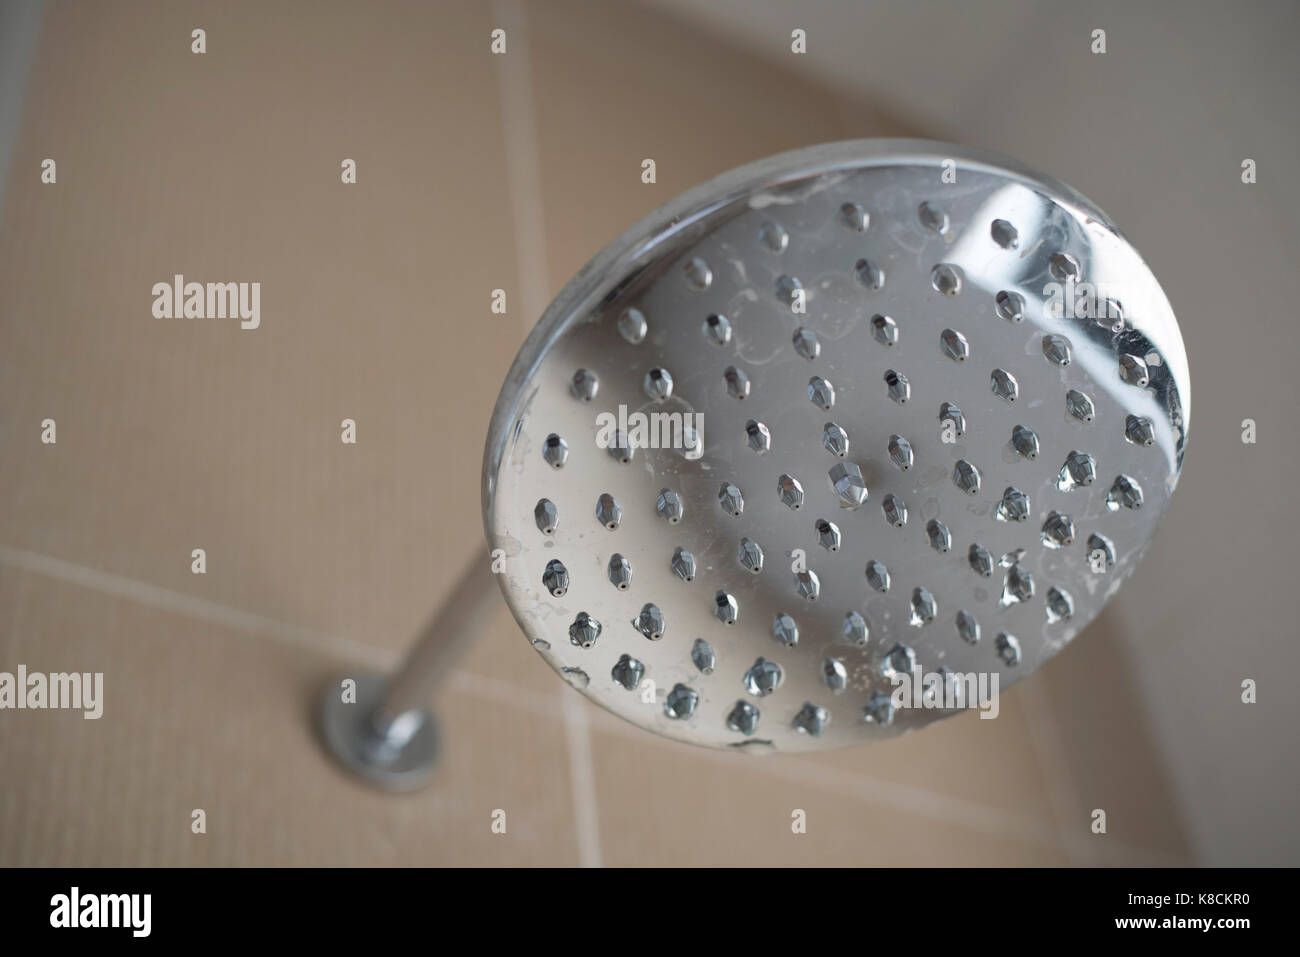 Silver Shower Head Stock Photos & Silver Shower Head Stock Images ...